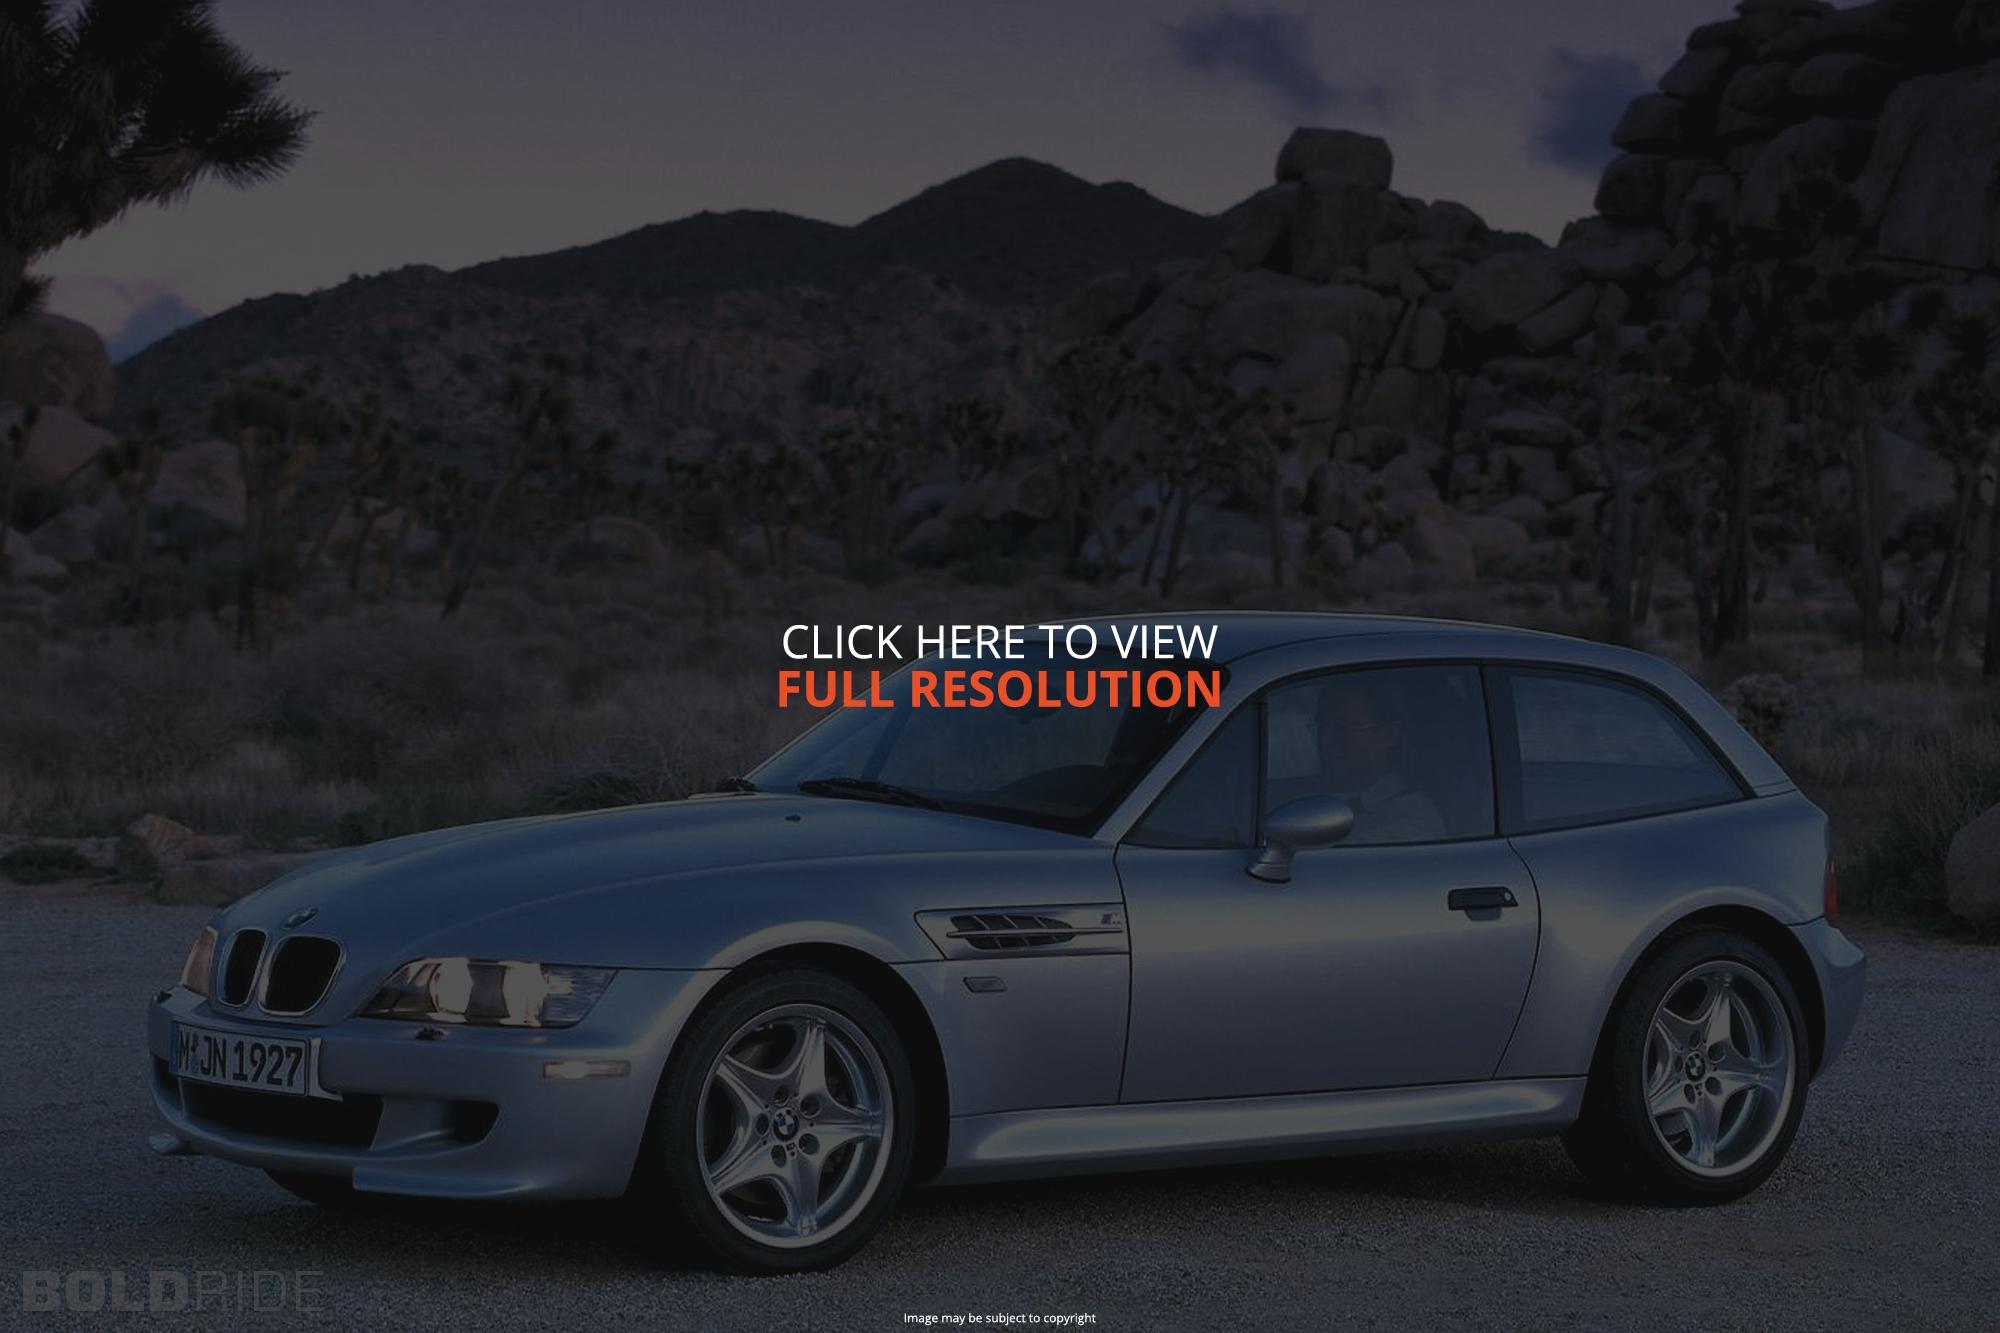 bmw z3 m coupe 2000 images #1